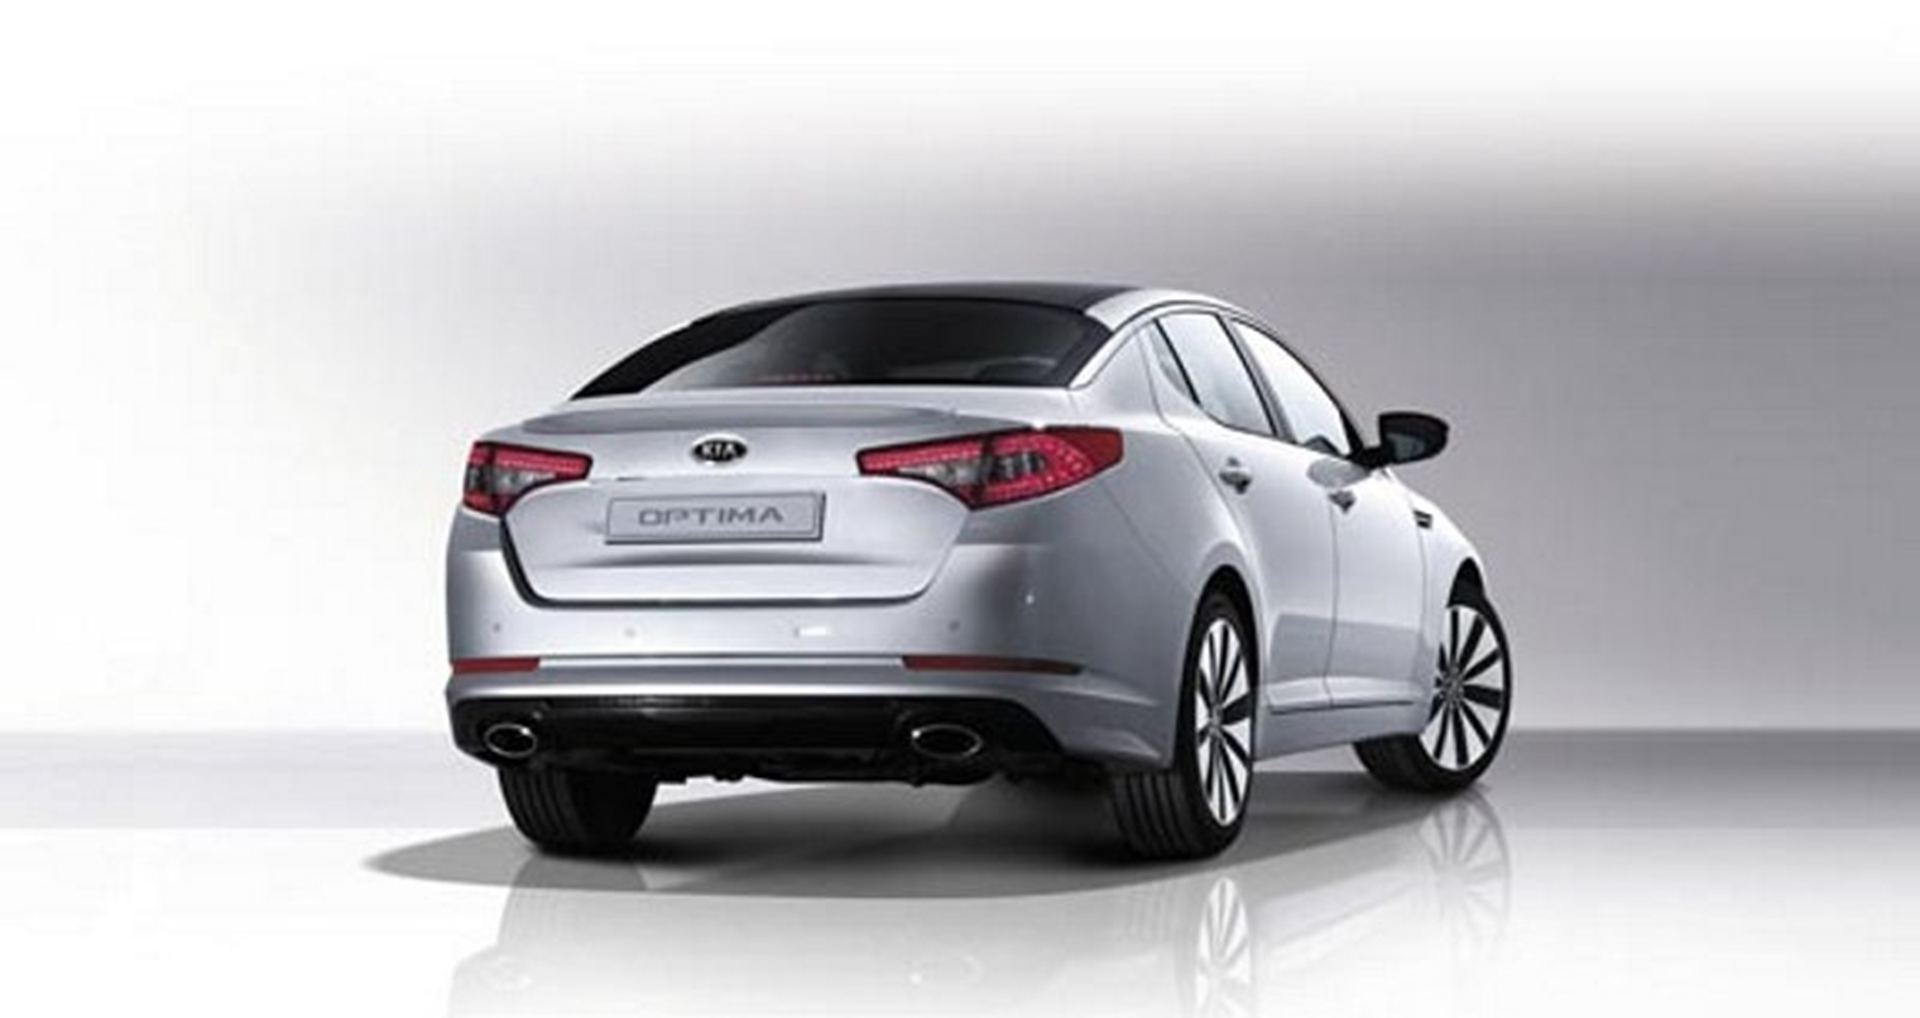 New Kia Optima To Be Unveiled At The 2011 Johannesburg International My South